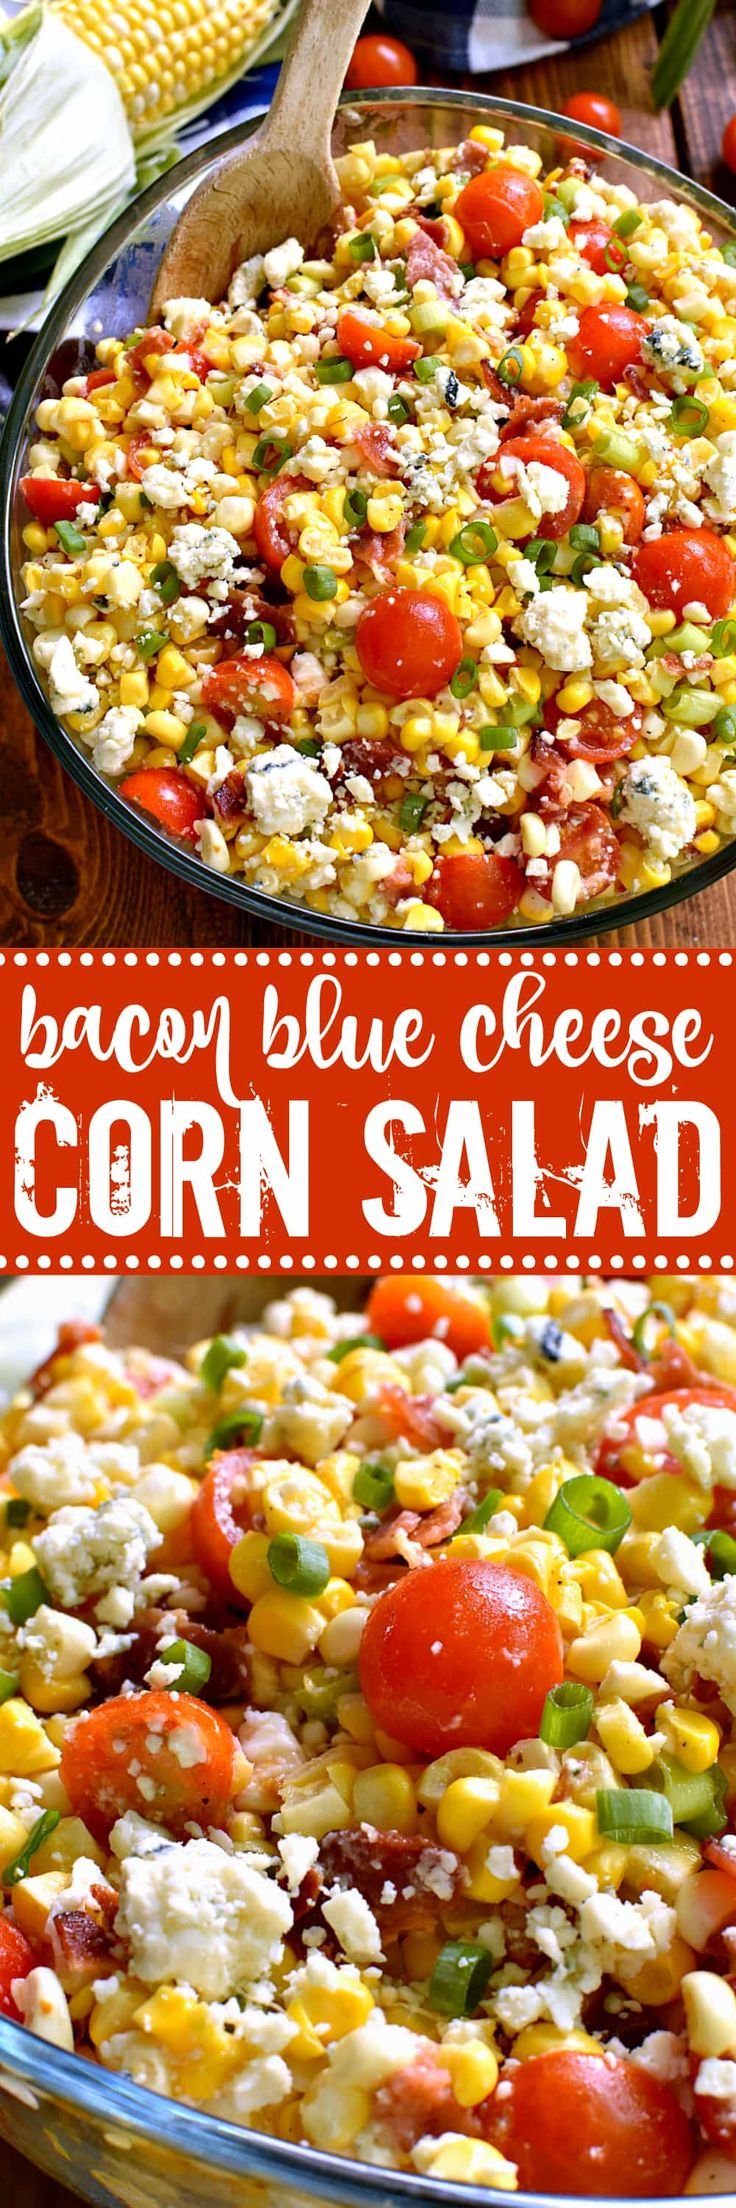 This Bacon Blue Cheese Corn Salad is the most delicious corn salad ever! Fresh sweet corn combined with crispy bacon, cherry tomatoes, crumbled blue cheese, green onions, and a light vinaigrette. Perfect for summer picnics, cookouts, or pot lucks!